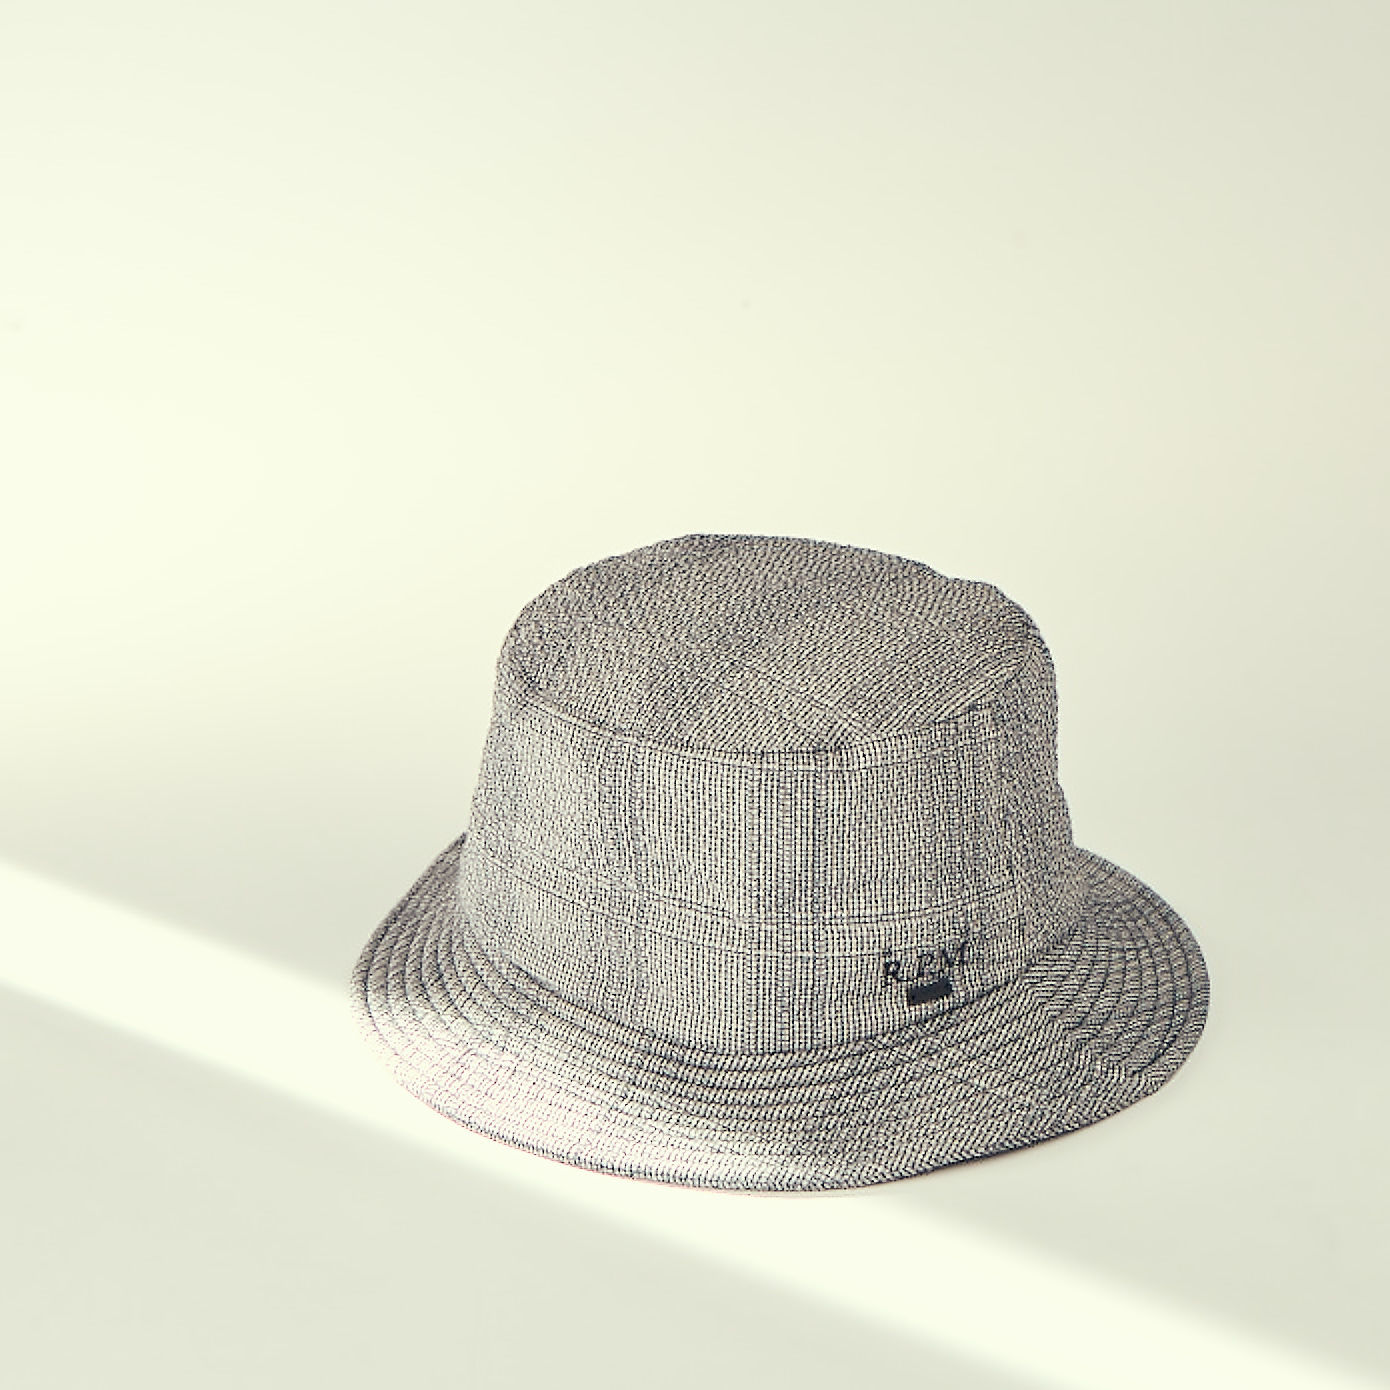 gentleman 2019 summer hats 11